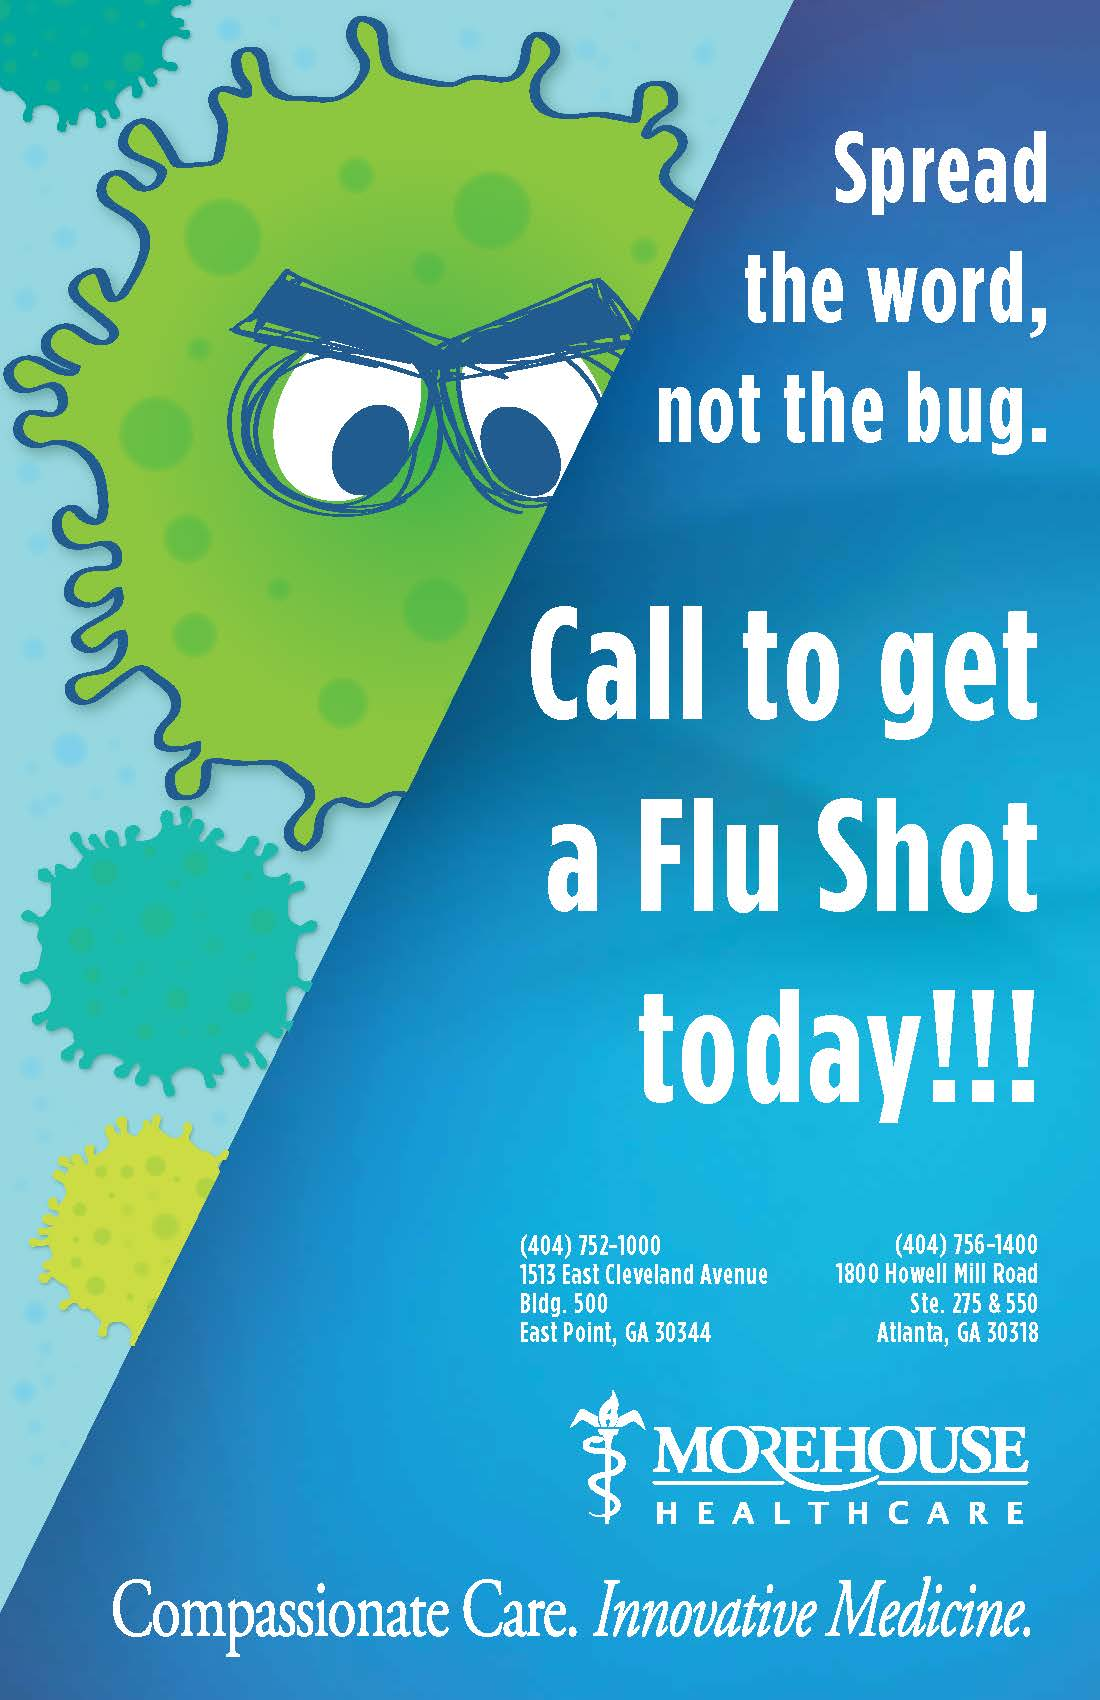 Call to get a flu shot today!